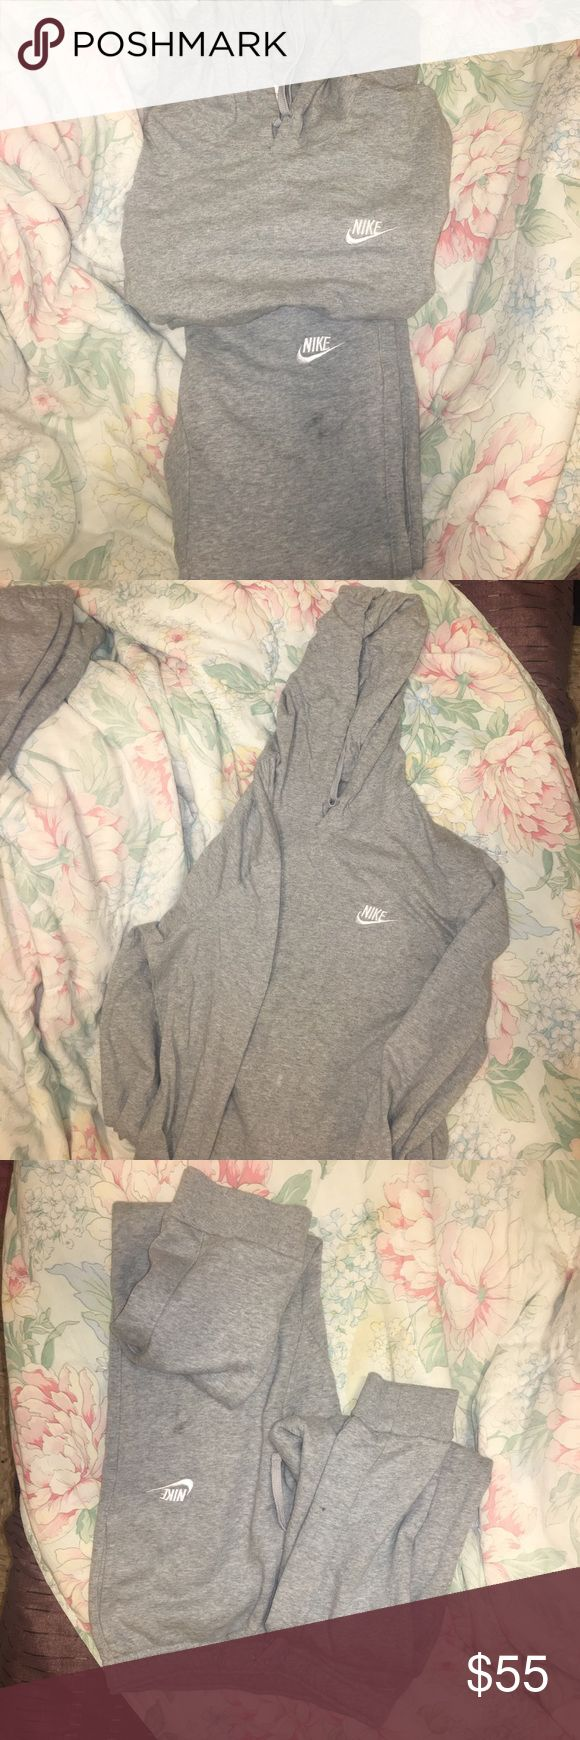 Nike Sweatsuit Perfect condition I'll rewash before I send off. This is a small in MENS. I'm 5'1 and 120 pounds it's big on me. Has to go lol Nike Other